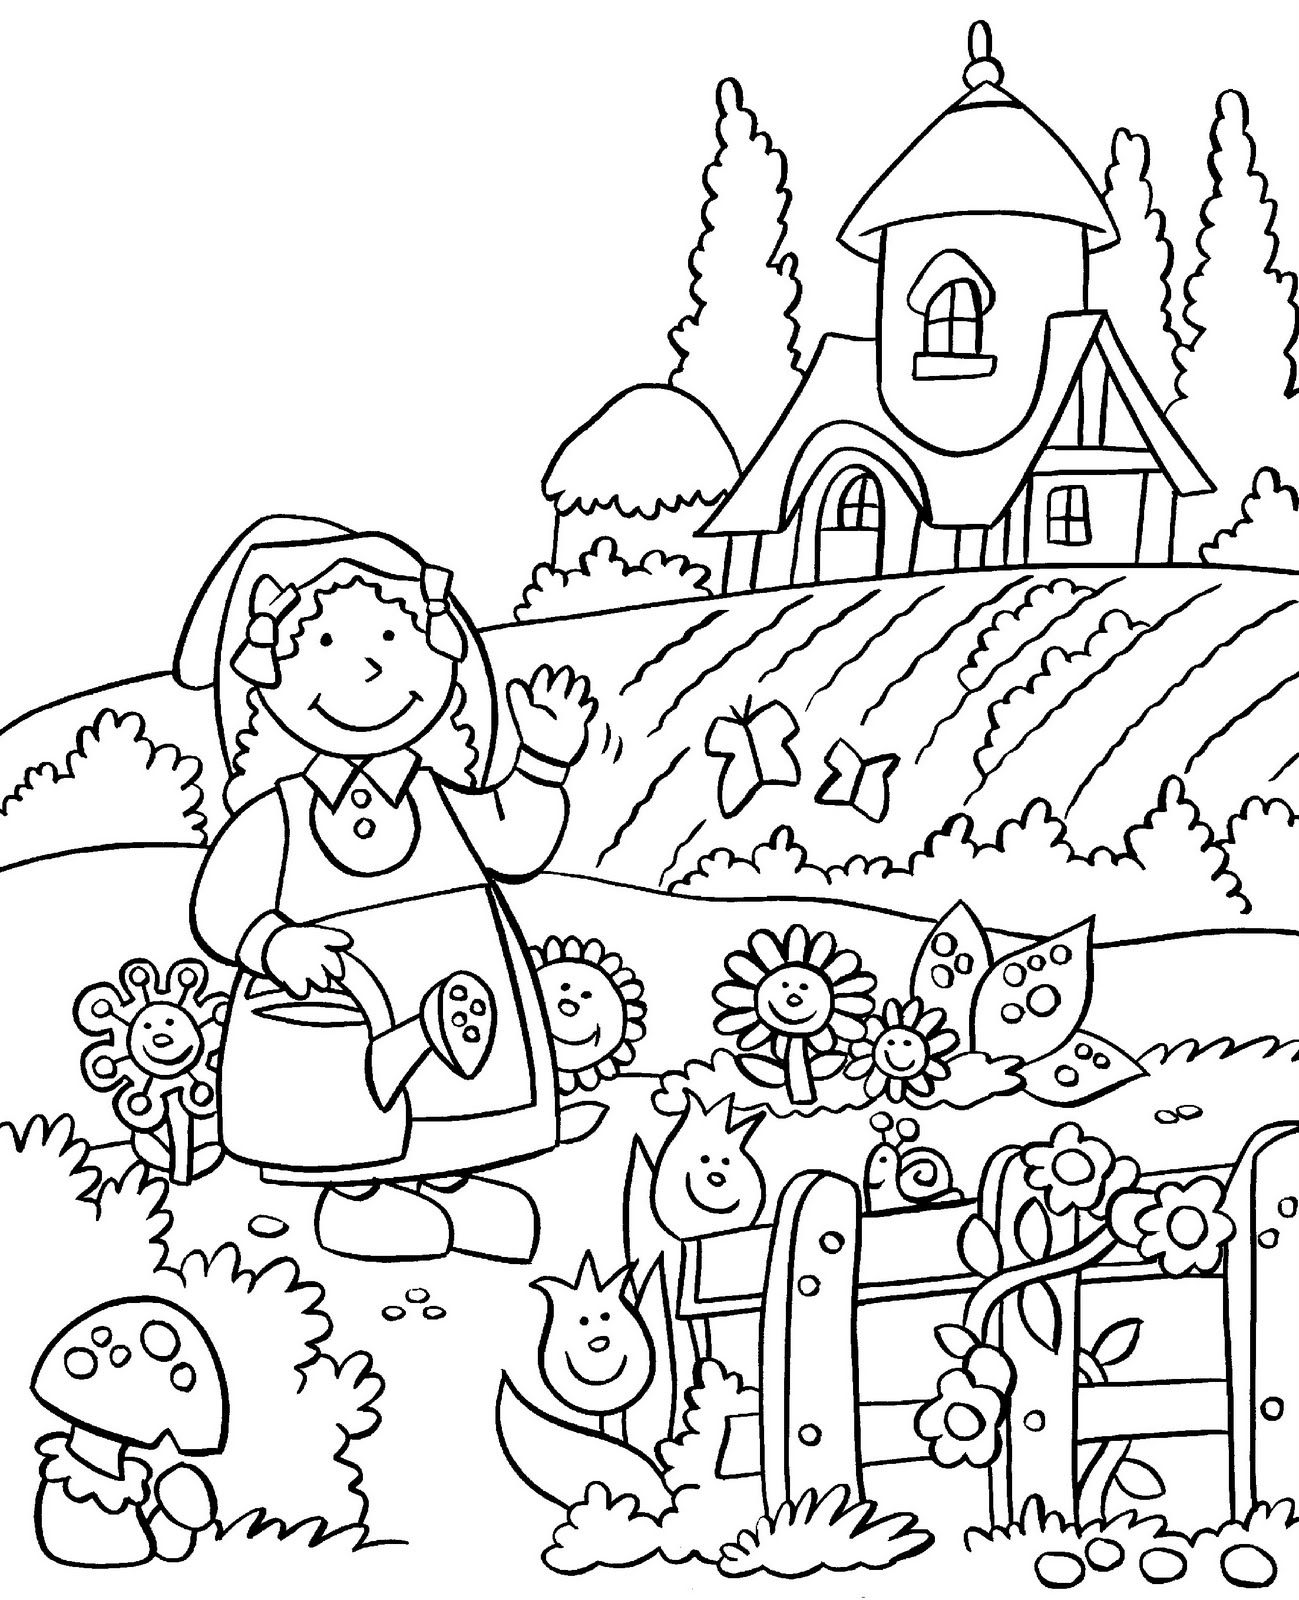 Gardening Coloring Page For Kids Garden Coloring Pages Coloring Books Vegetable Coloring Pages